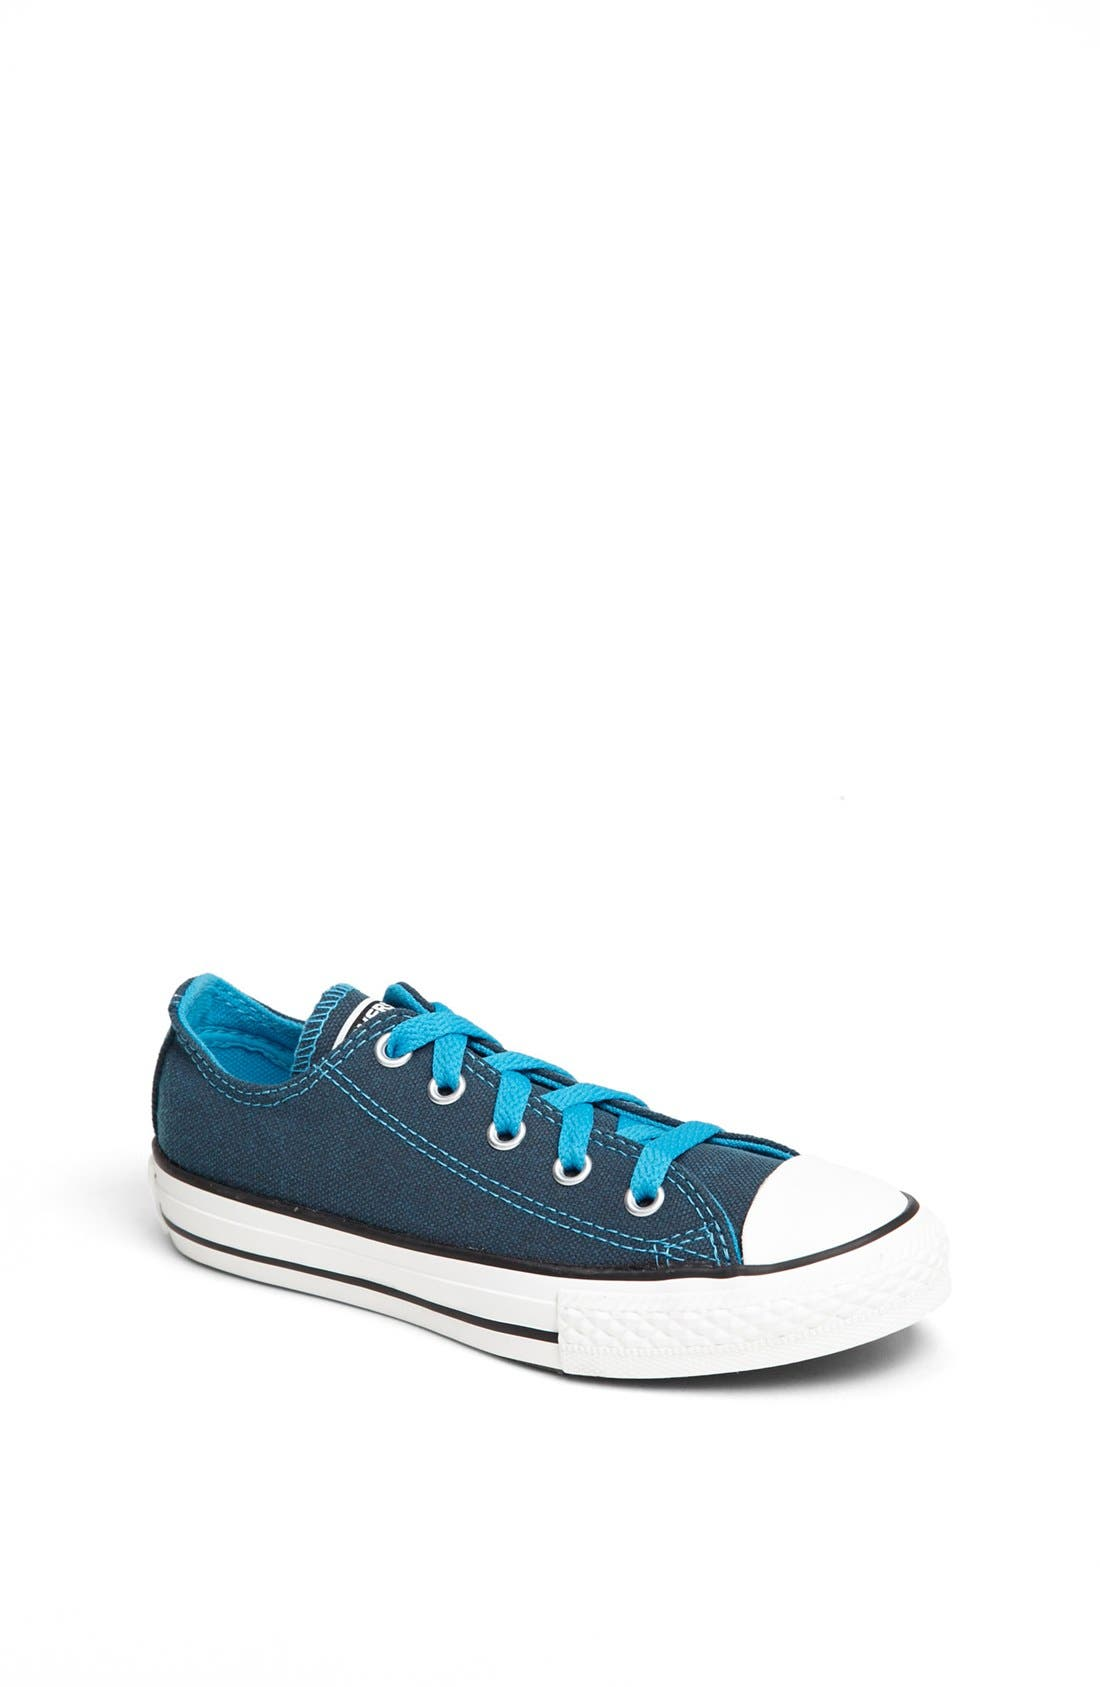 Alternate Image 1 Selected - Converse Chuck Taylor® All Star® Low Top Sneaker (Toddler & Little Kid)